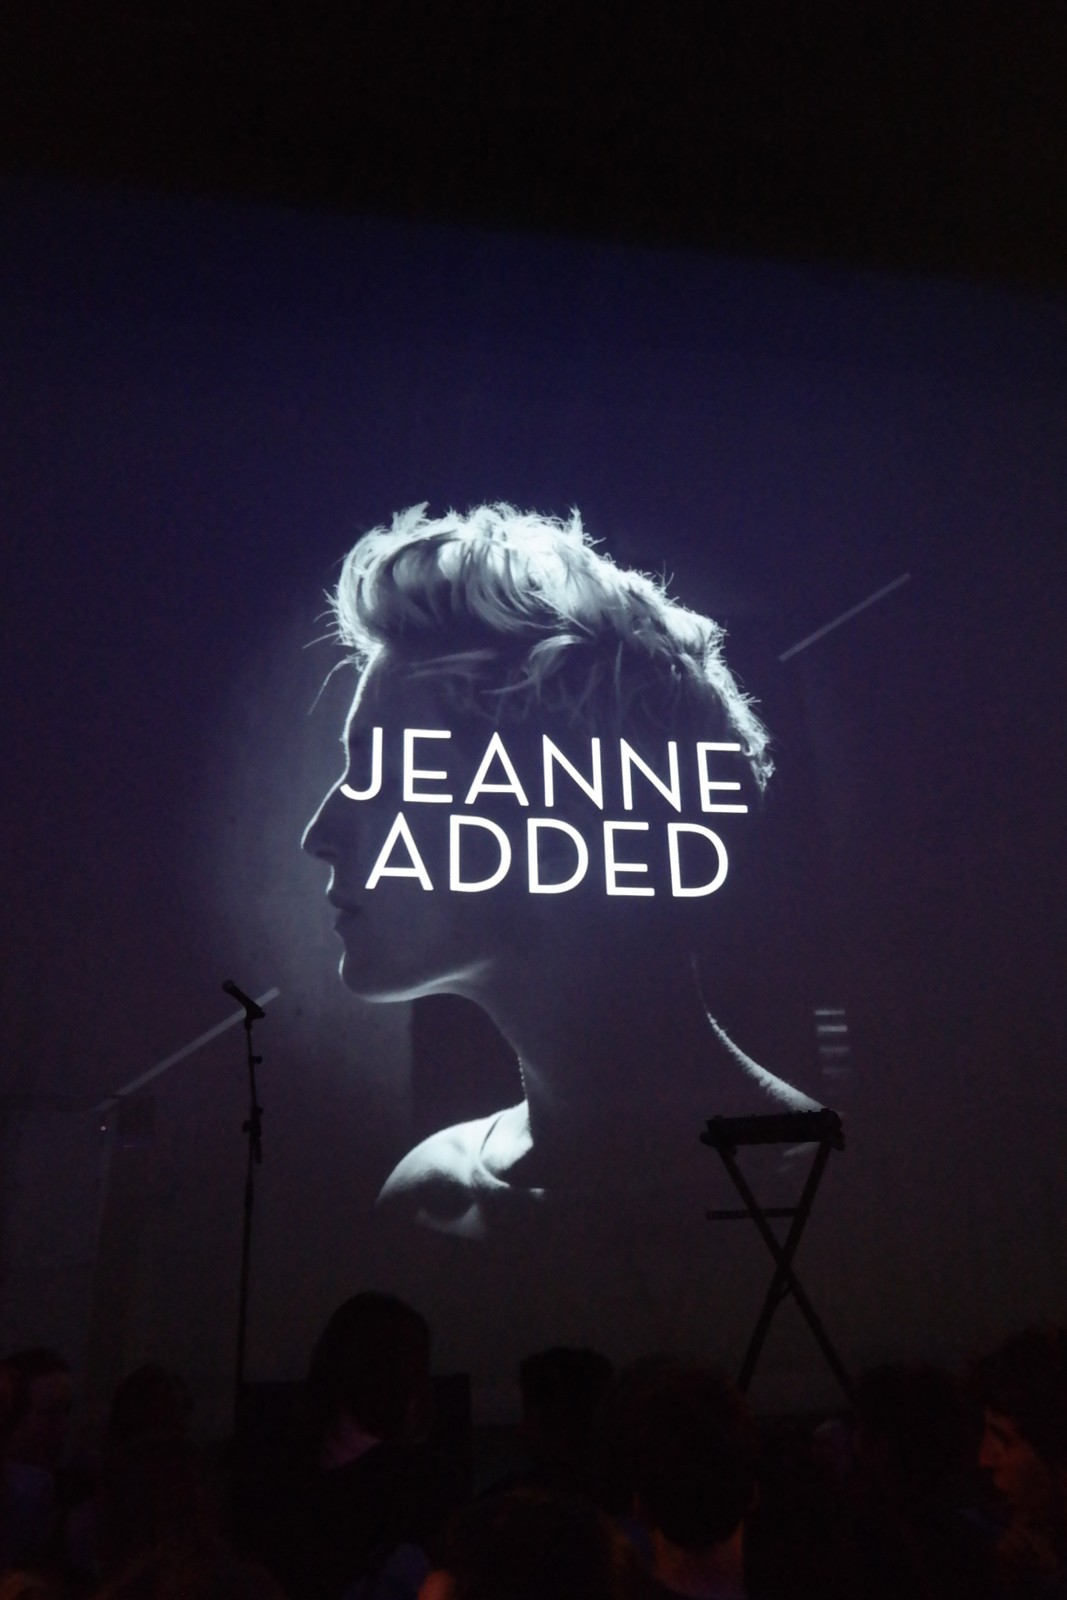 Jeanne-Added-Prix-Deezer-Adami-Pros-2015-alum-be-sensational-A-War-is-Coming-Naive-Records-concert-musique-chanteuse-photo-by-united-states-of-paris-blog